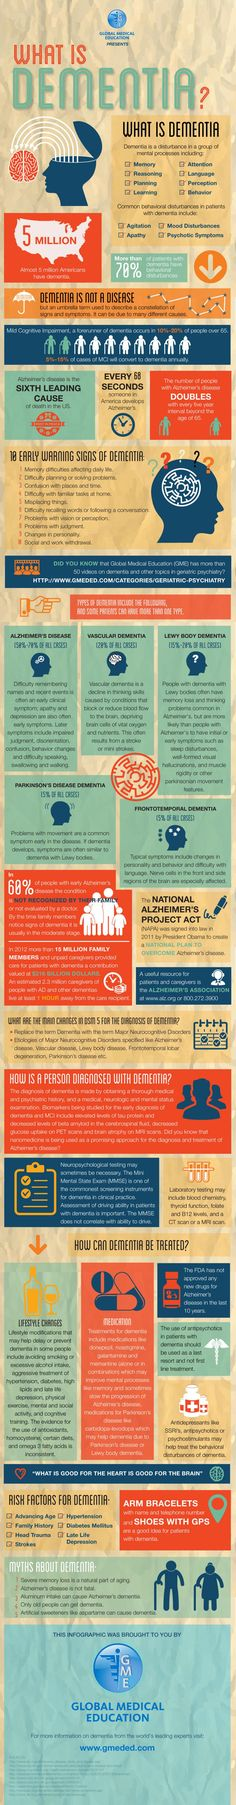 Facts and myths about dementia everyone should know.